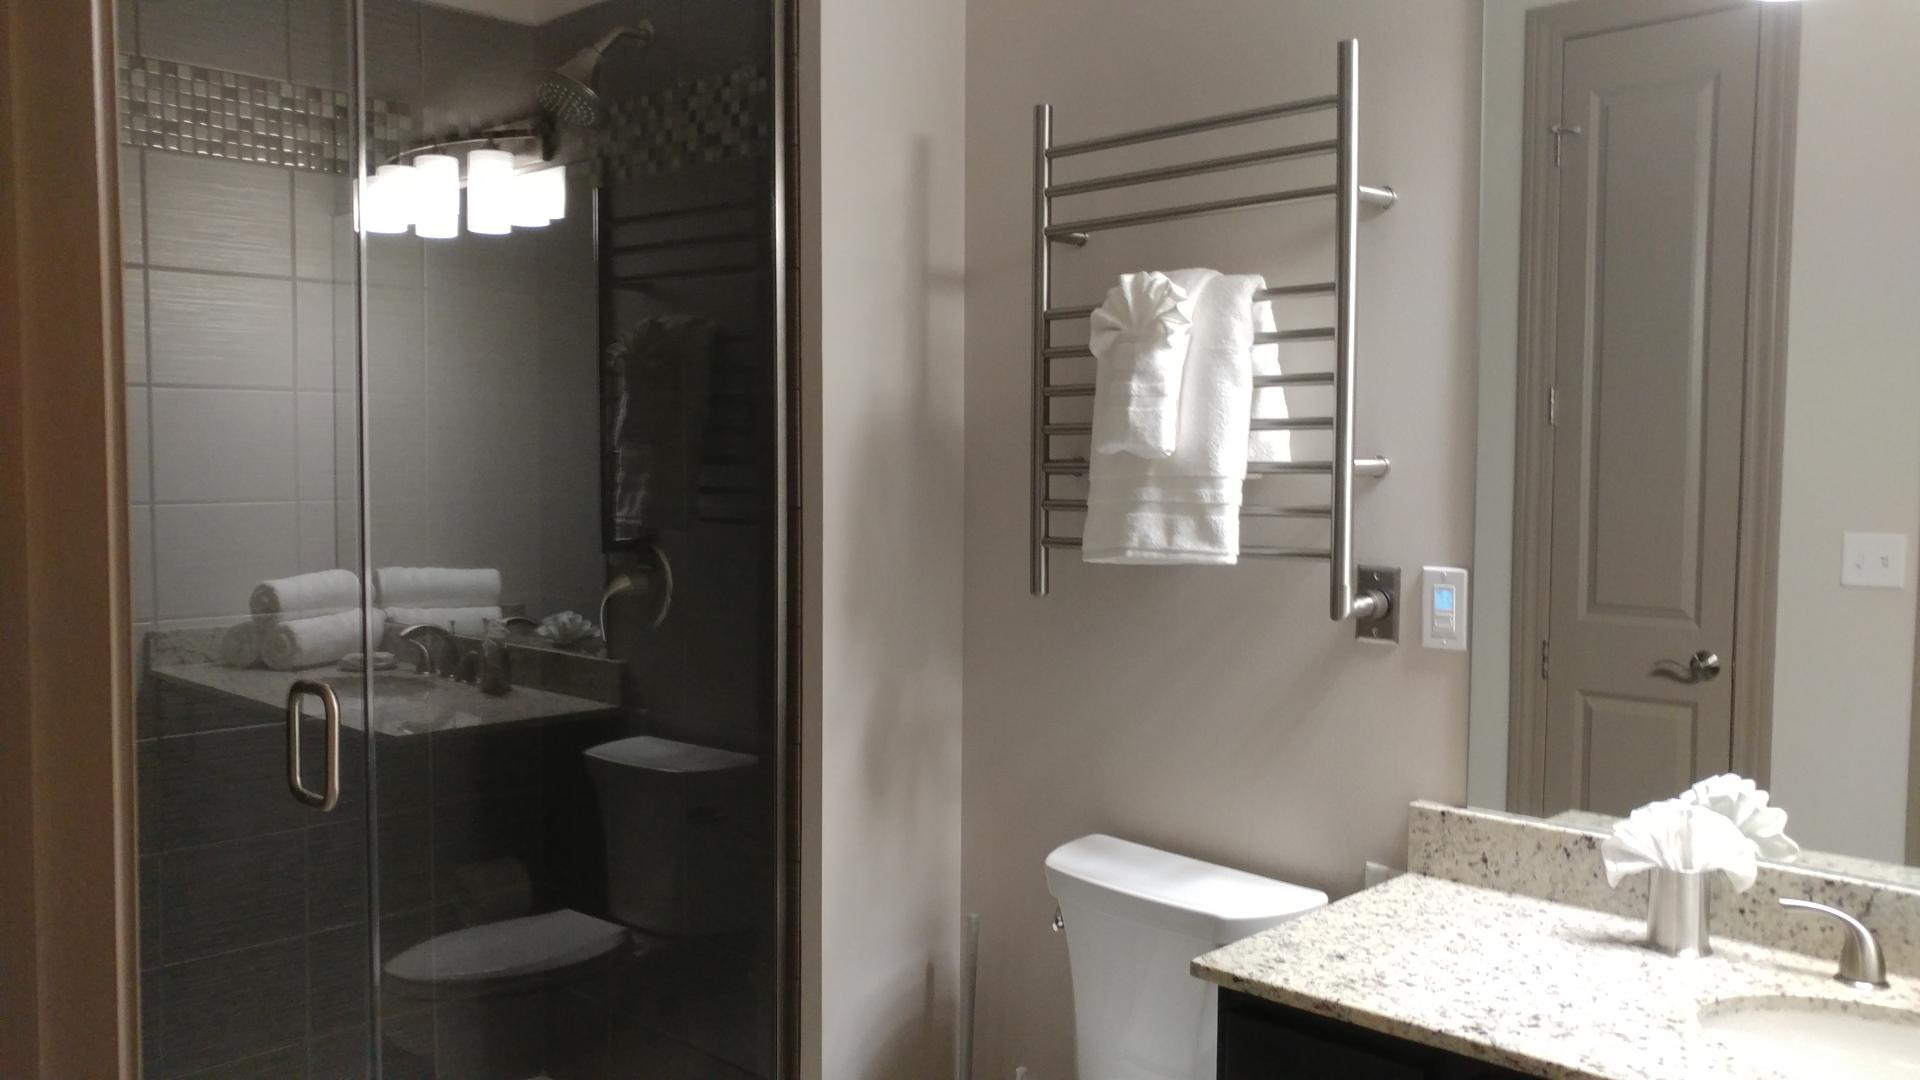 Bathroom at The Orion Apartments